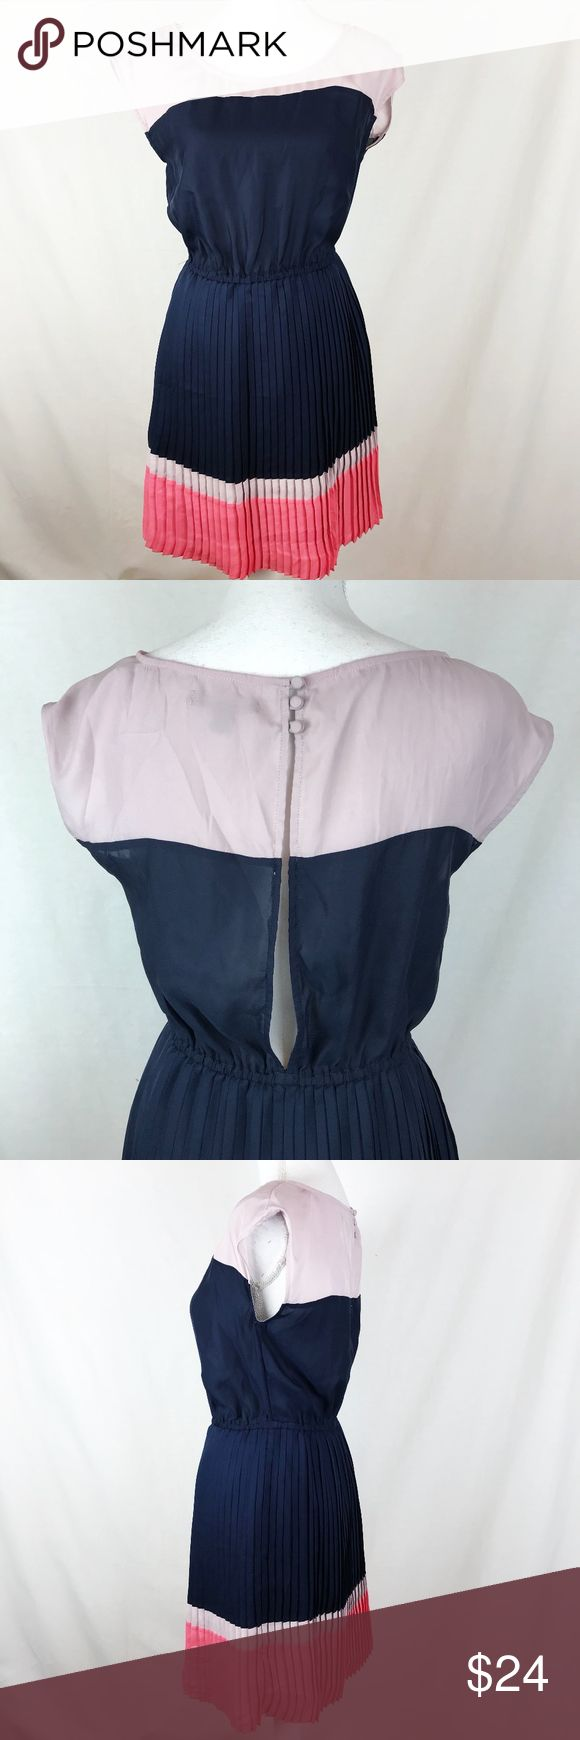 "American Eagle Outfitters Blue Pink Pleated Dress American Eagle Outfitters dress in a blend of blue, rose and pink. Pleated skirt with elastic waist. Fully lined. Materials Shell and lining 100% Polyester.   Size S  Measurements (laid flat) Armpit to armpit 17"" Waist 13.5"" expandable Length 33""  Condition Excellent condition preowned. Normal wear. No flaws noted. American Eagle Outfitters Dresses"